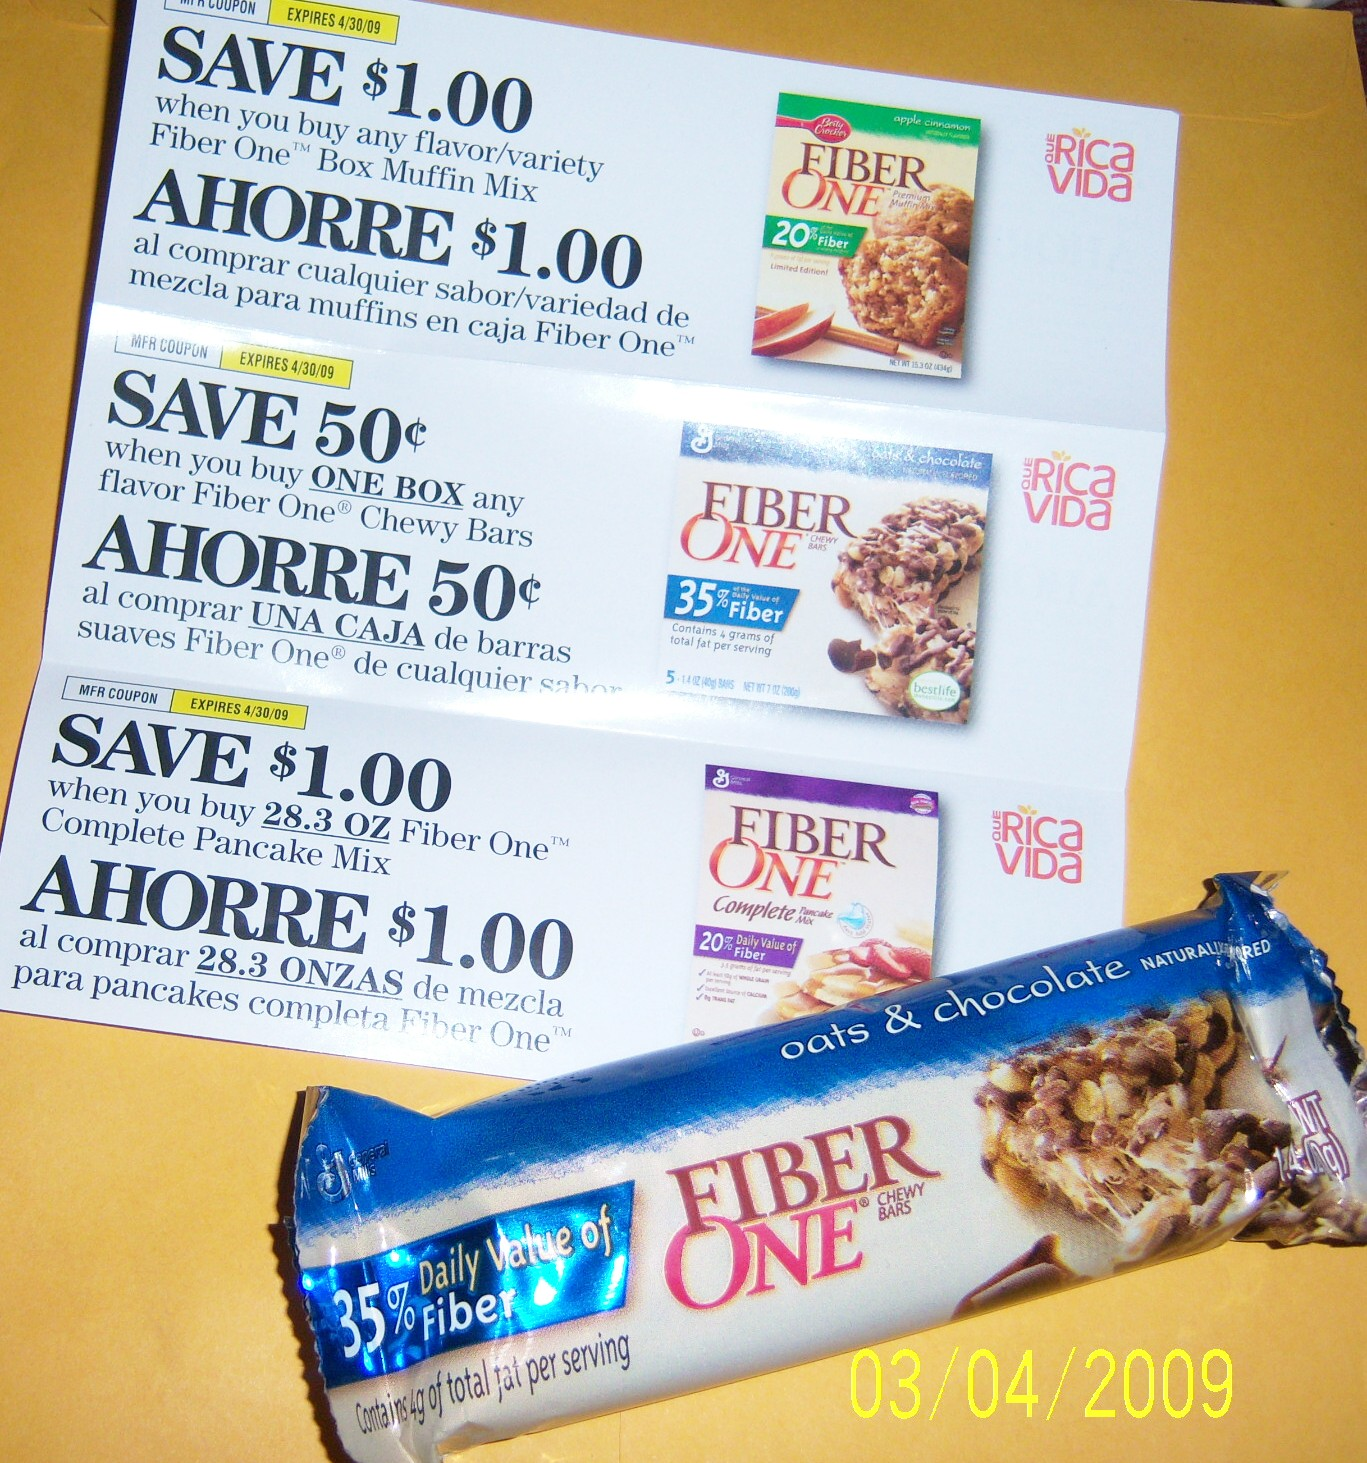 fiber one oats and chocolate chewy bar and 3 coupons